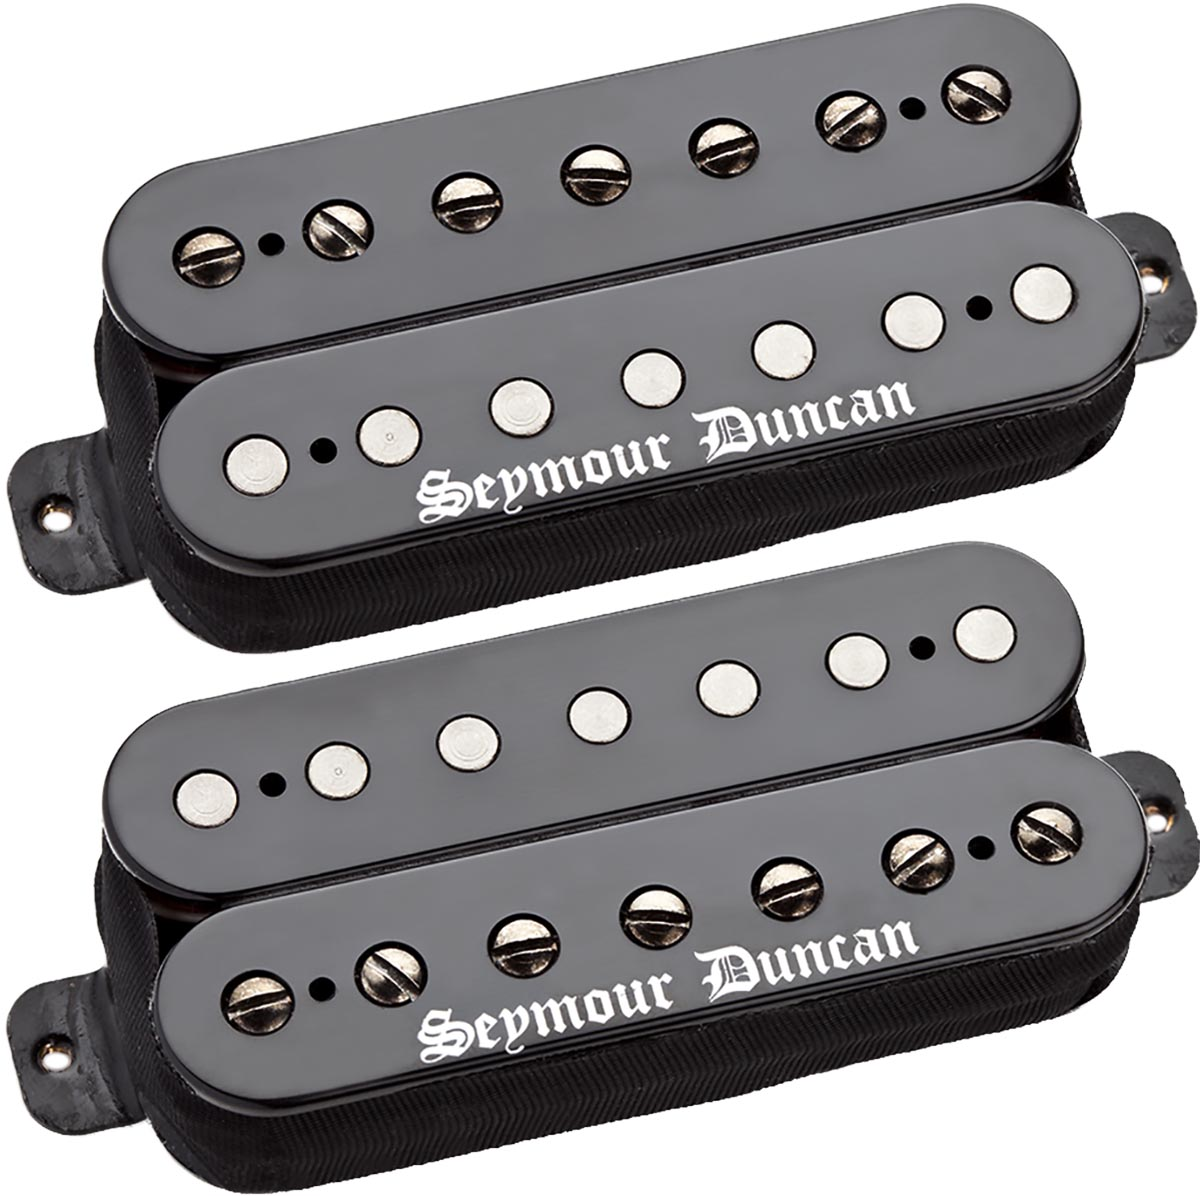 Seymour Duncan Sentient 7 String Neck Humbucker Black Guitar Pickup STRING SET